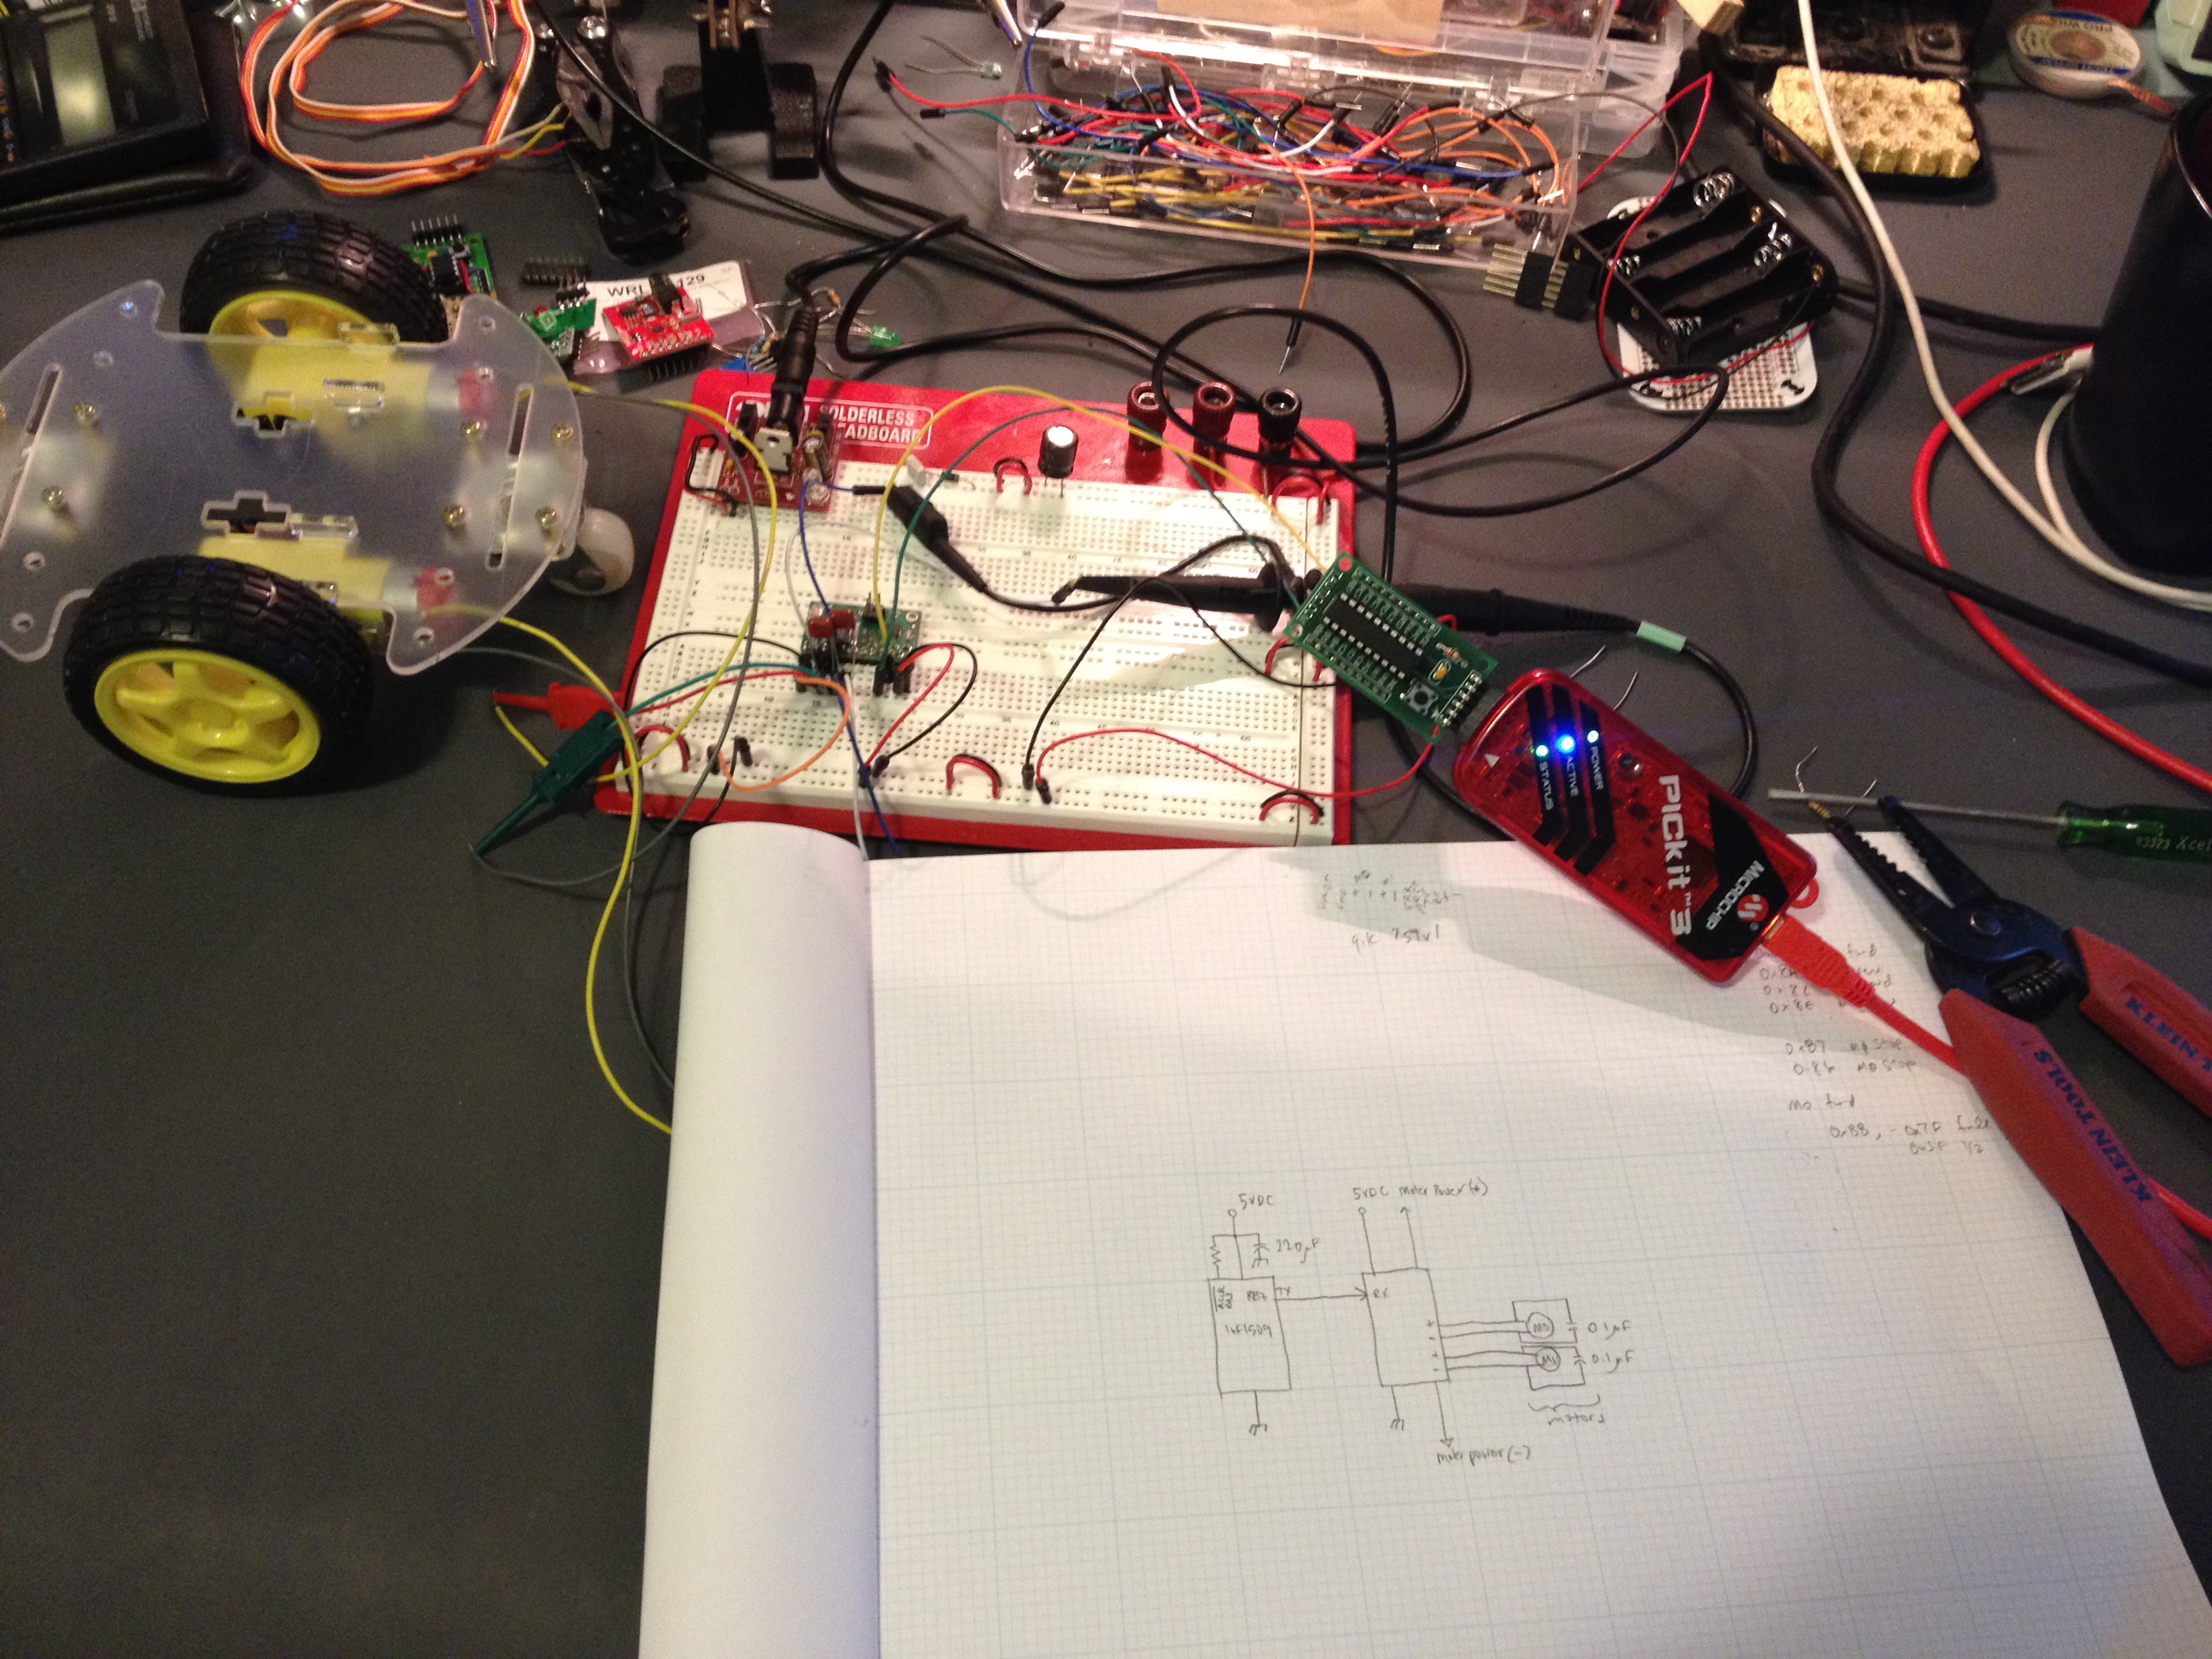 December 2013 Electrical Wire Tester Ebay First Step Of My Cheap Chassis Robot Build Getting The Motors Turning